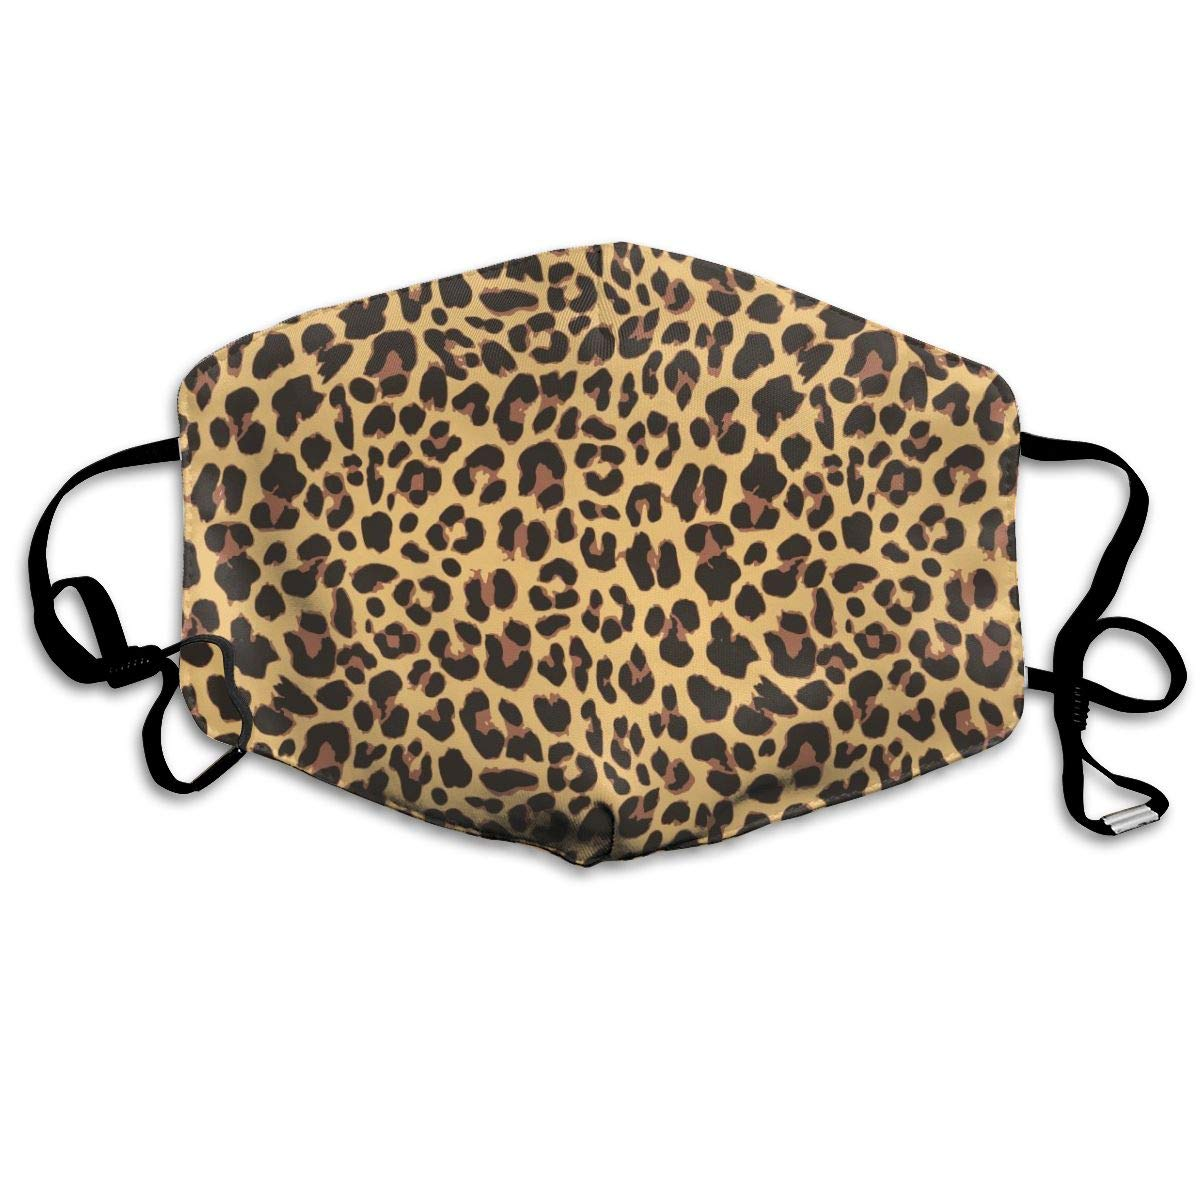 Mouth Mask Brown Cheetah Fashion Earloop Face Mask For Kids Teens Men Women Winter Summer